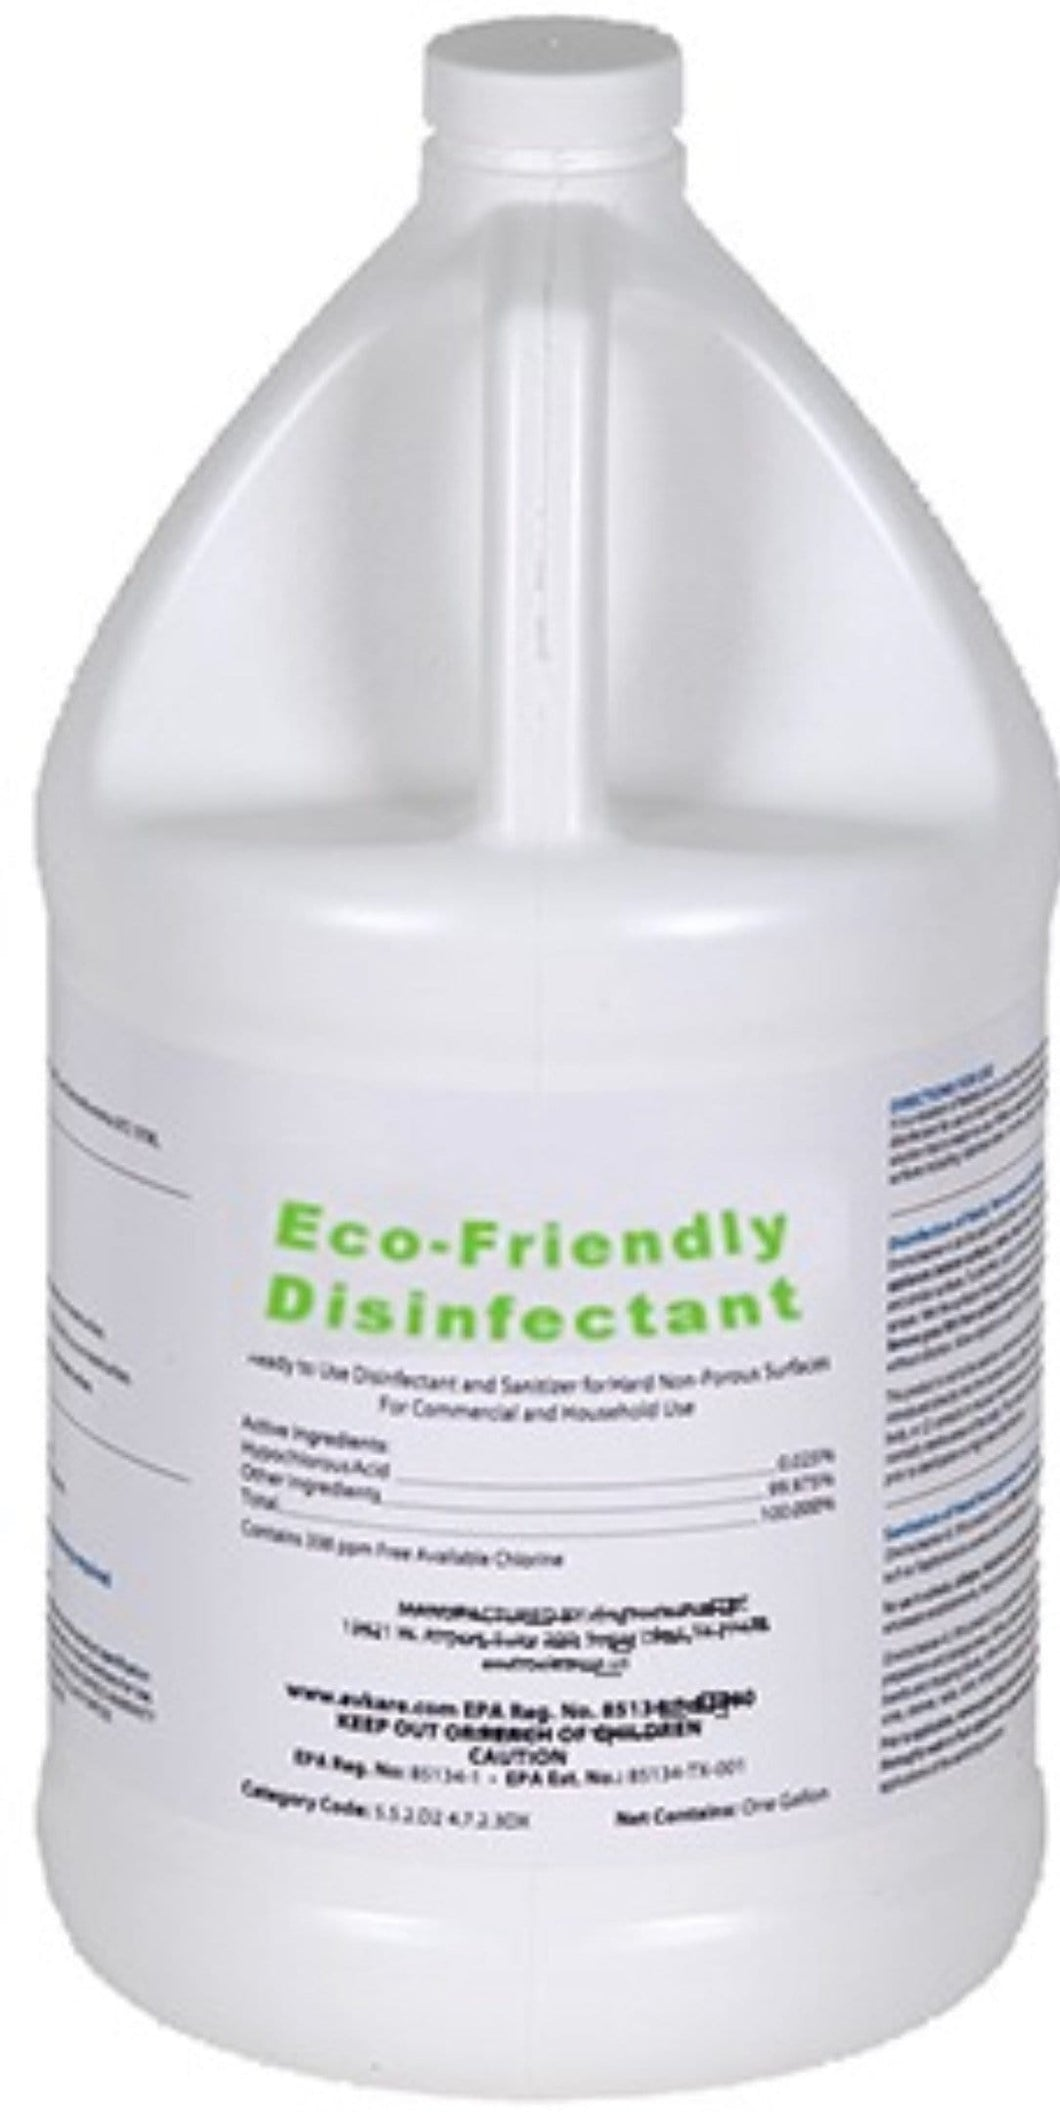 Enviro-Friendly (1 gallon) - EPA & FDA Registered + Health Canada Approved Hospital Grade Disinfectant - EFFECTIVE AGAINST COVID-19